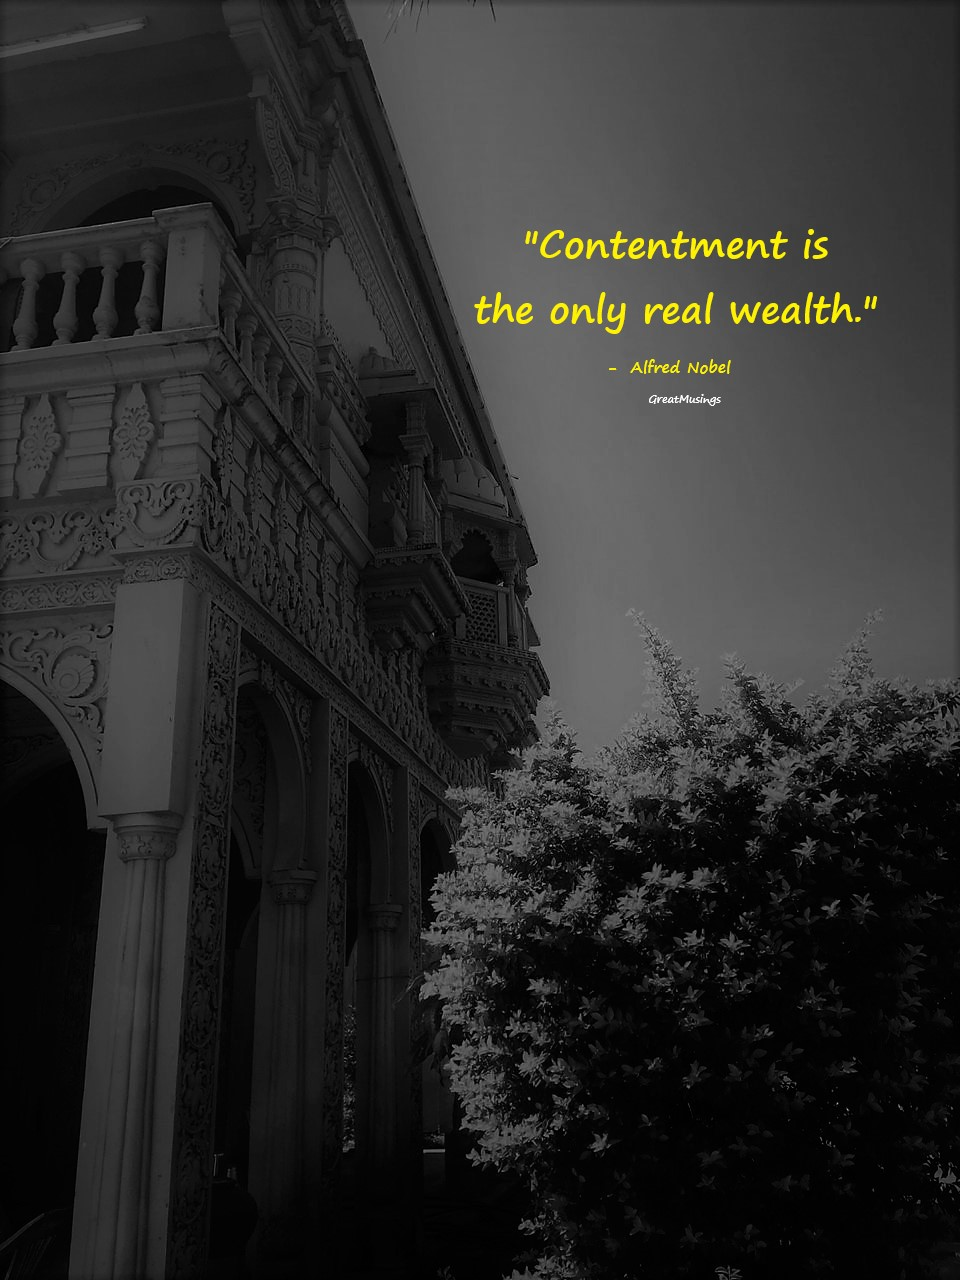 Alfred Nobel quote on a pic